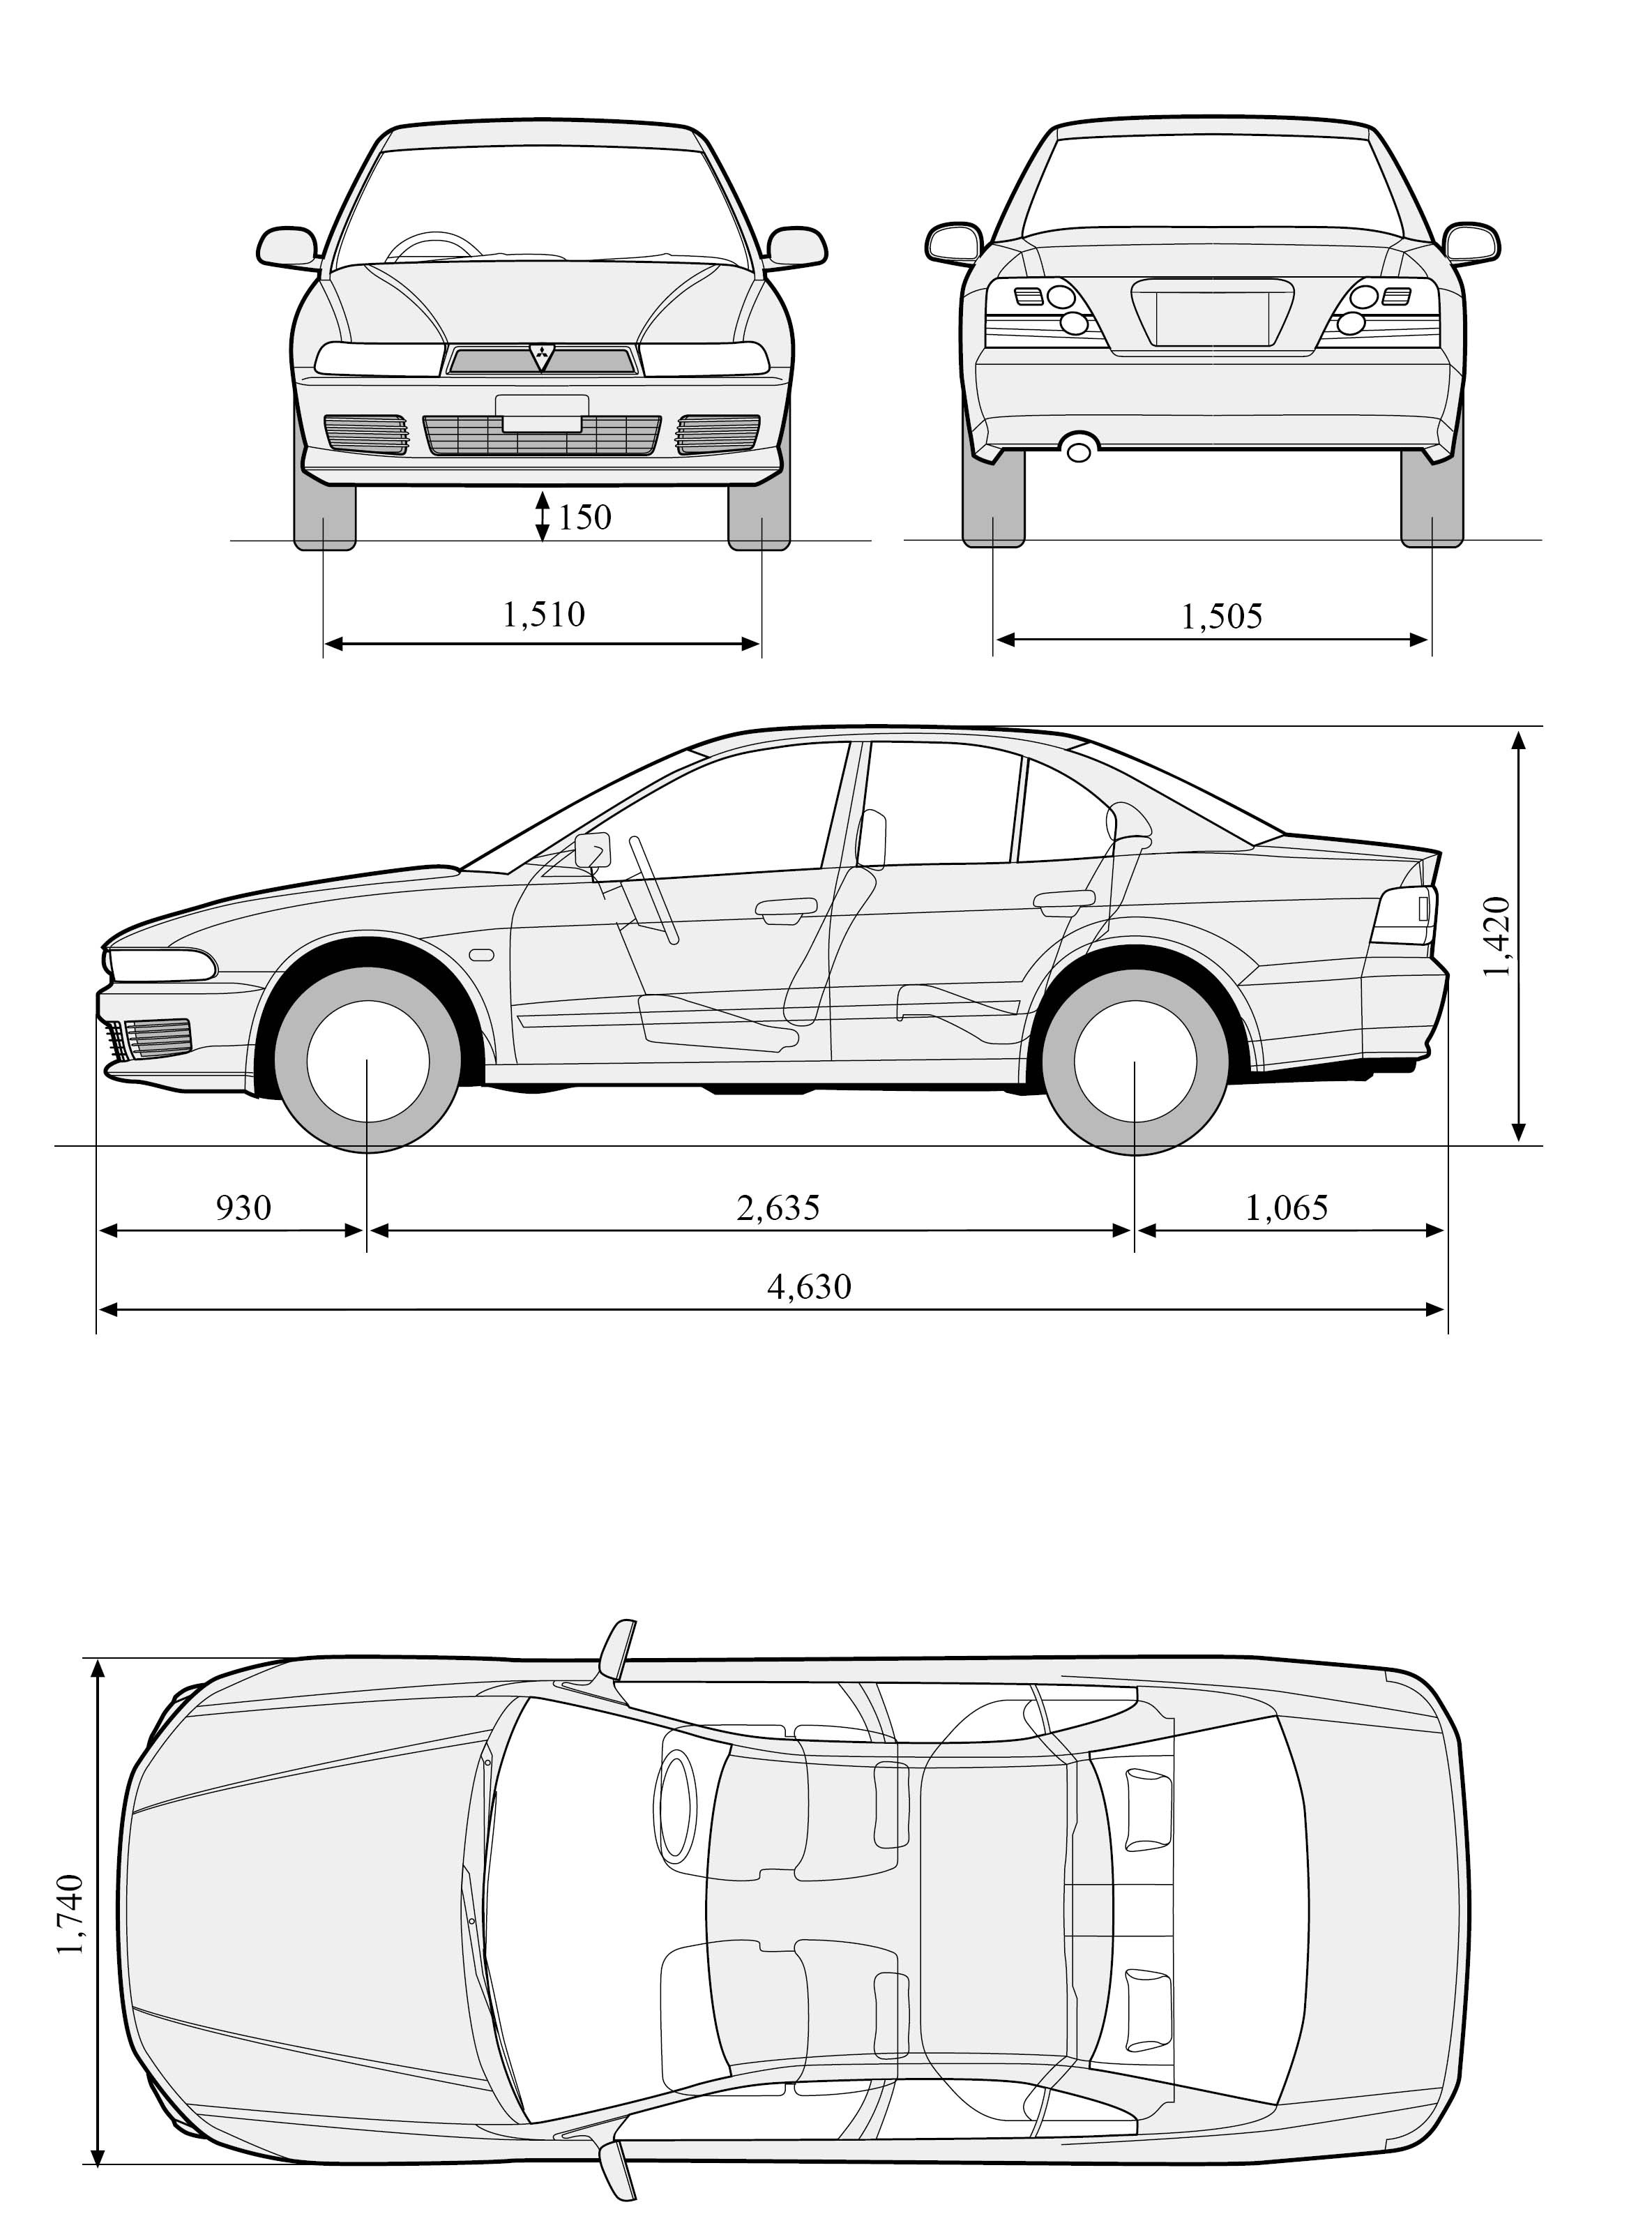 Mitsubishi Galant Engine Diagram Wiring Moreover 1998 Eclipse With Sound Tutorials3d Blueprints Of